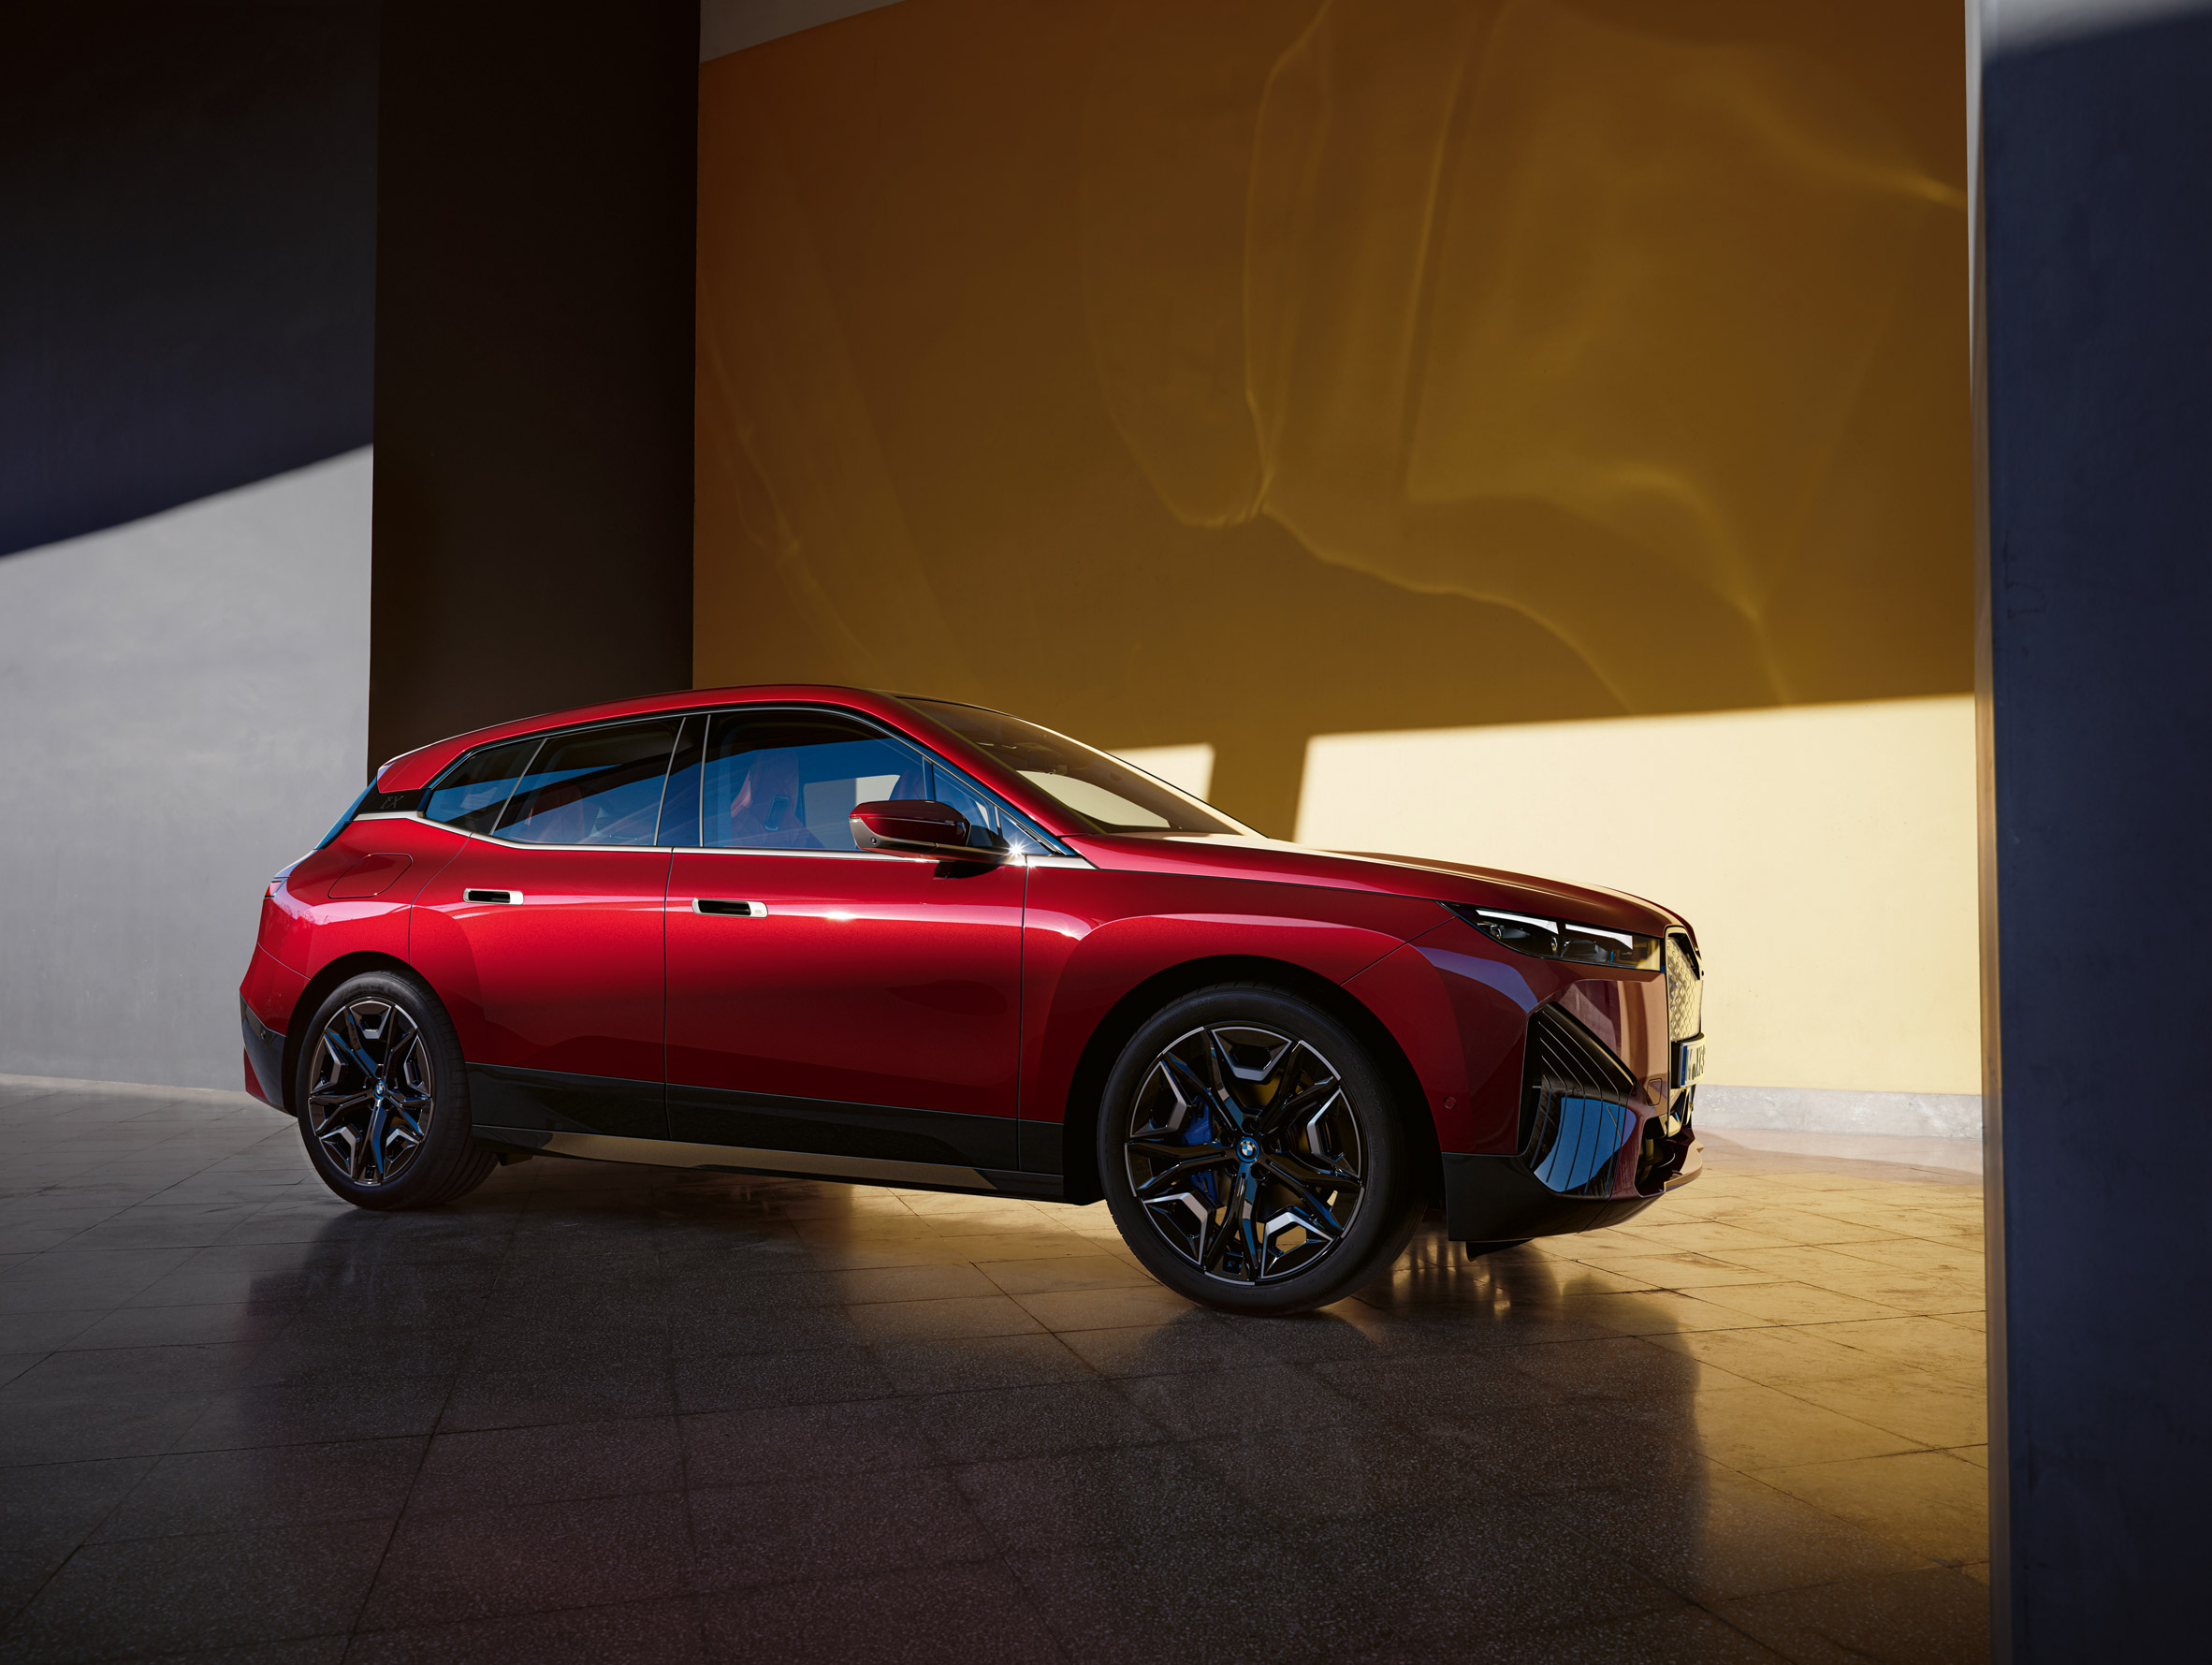 BMW's upcoming fully-electric iX model